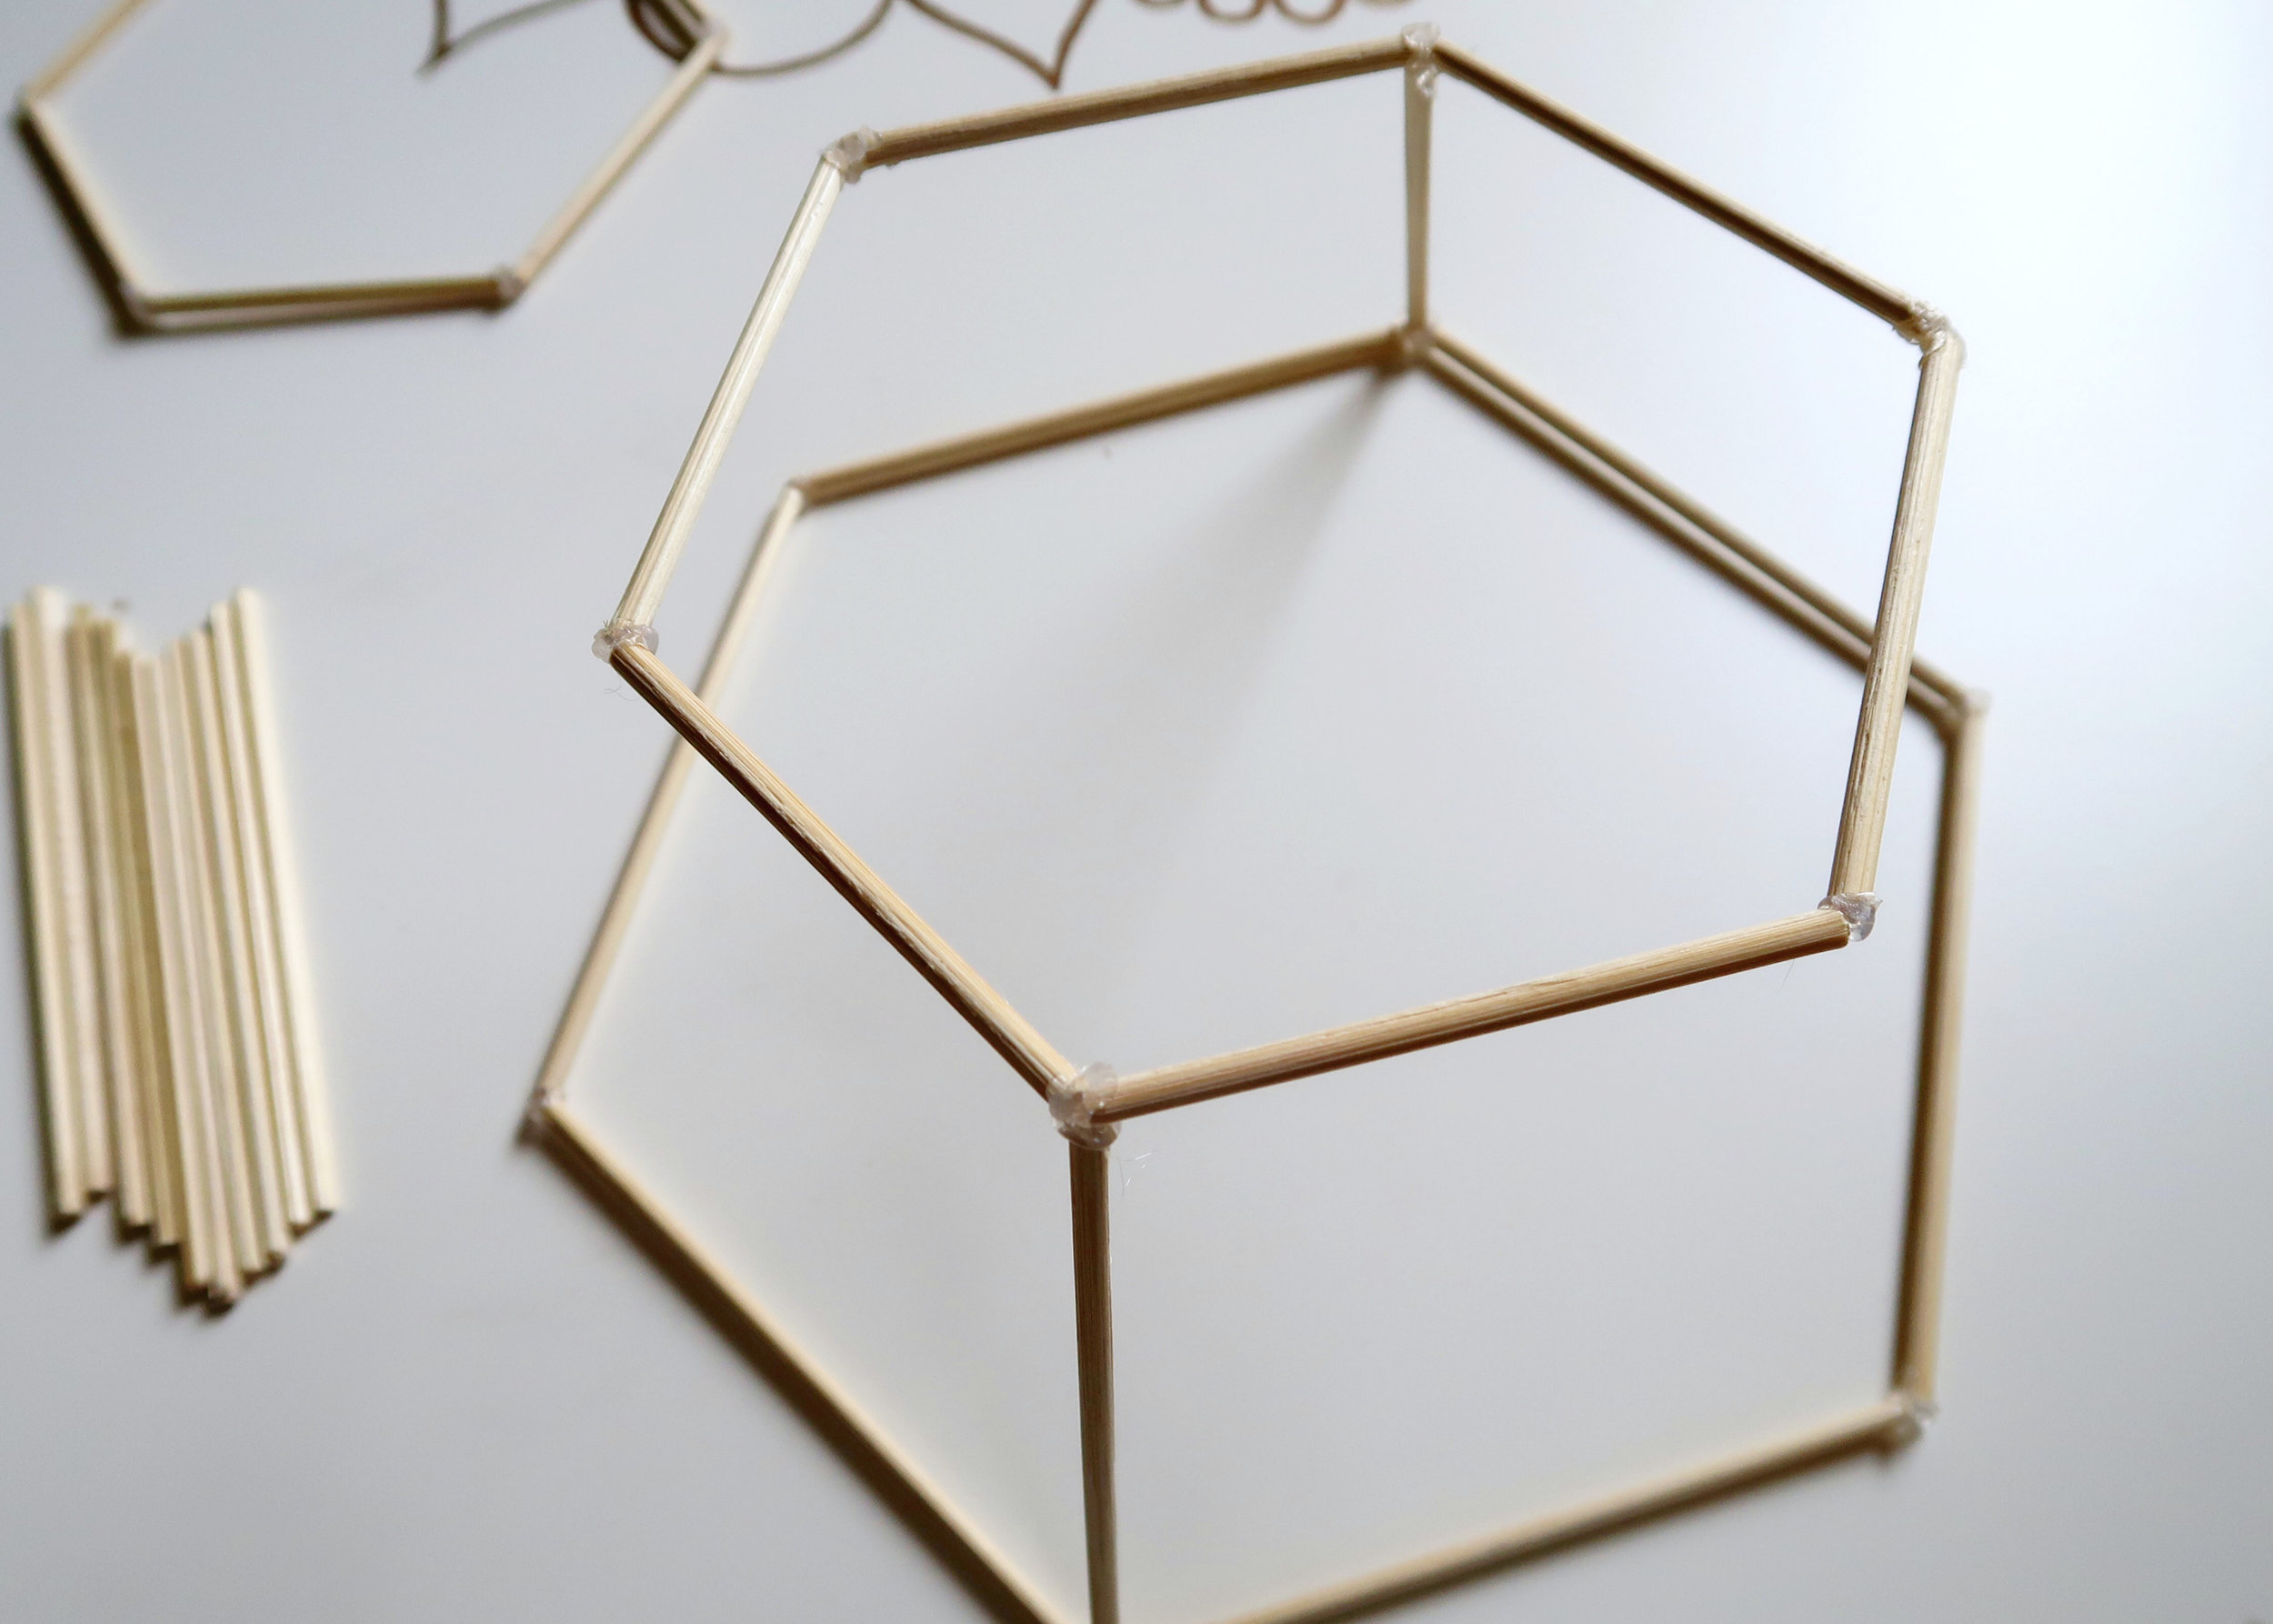 7. - Once dry, stick one of the small hexagons on top of the two 10cm skewers you just glued to the large hexagon. When these are secure, stick the other four 10cm lengths between the large and small hexagon at each angle.